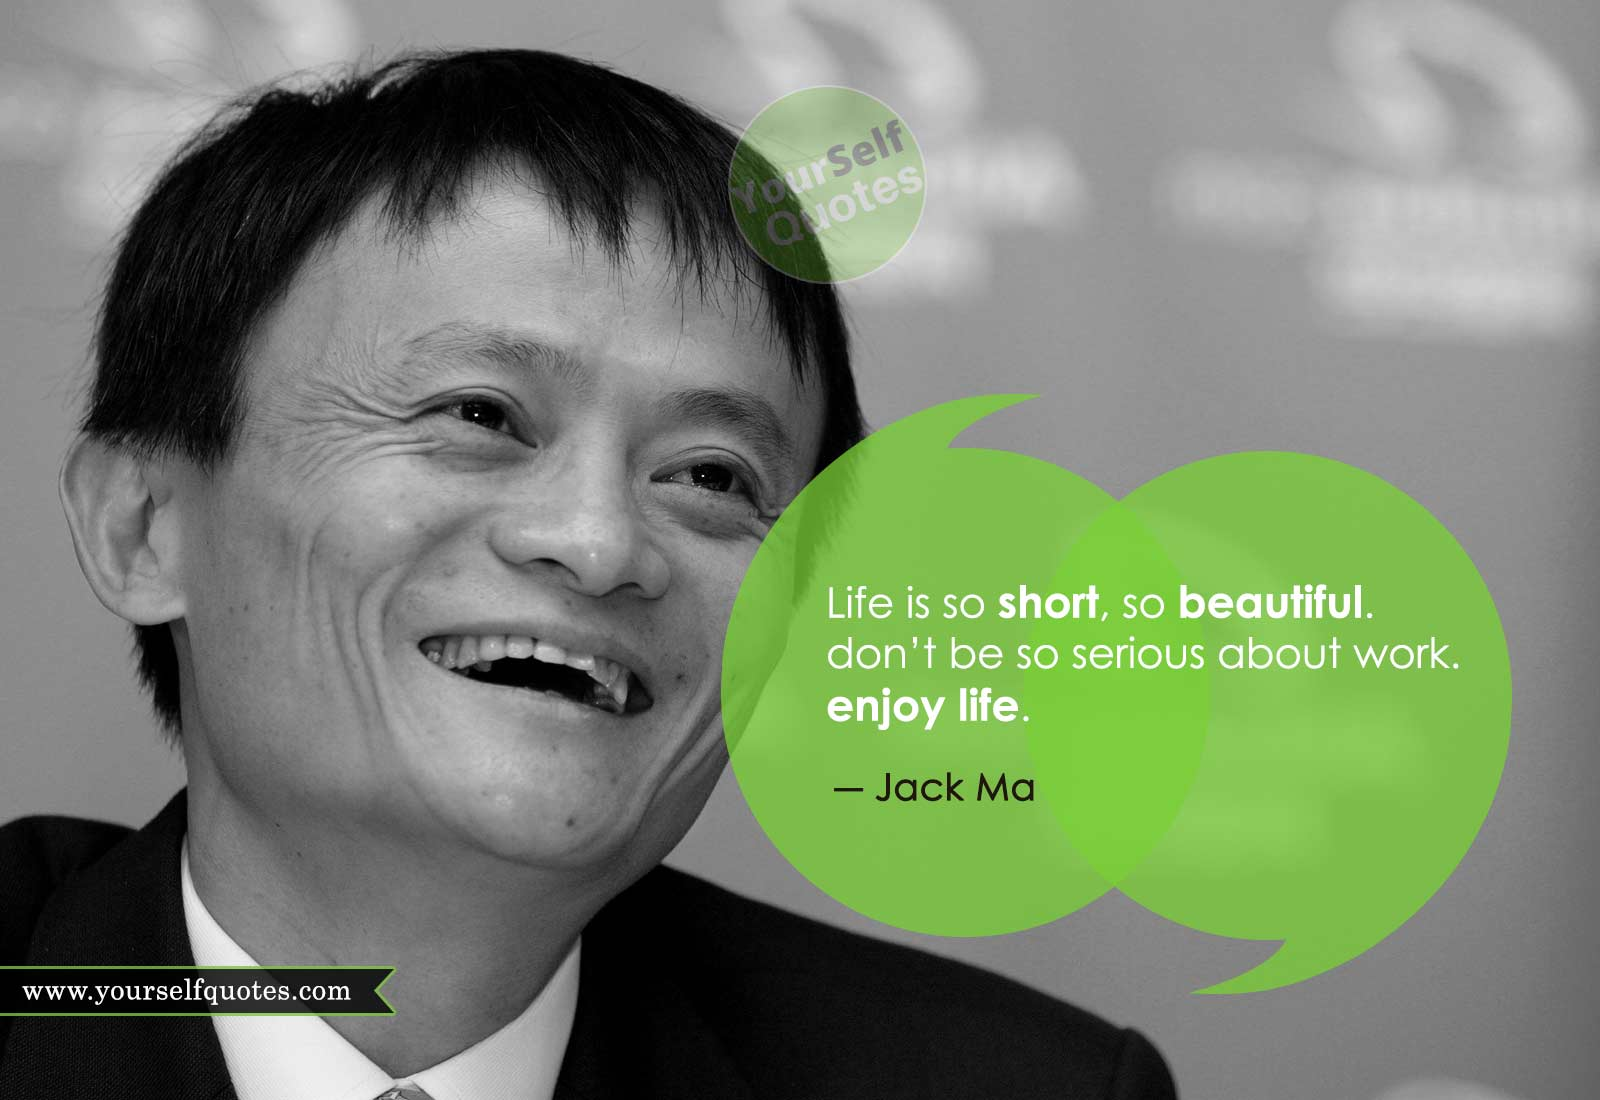 Jack Ma Quotes on Life